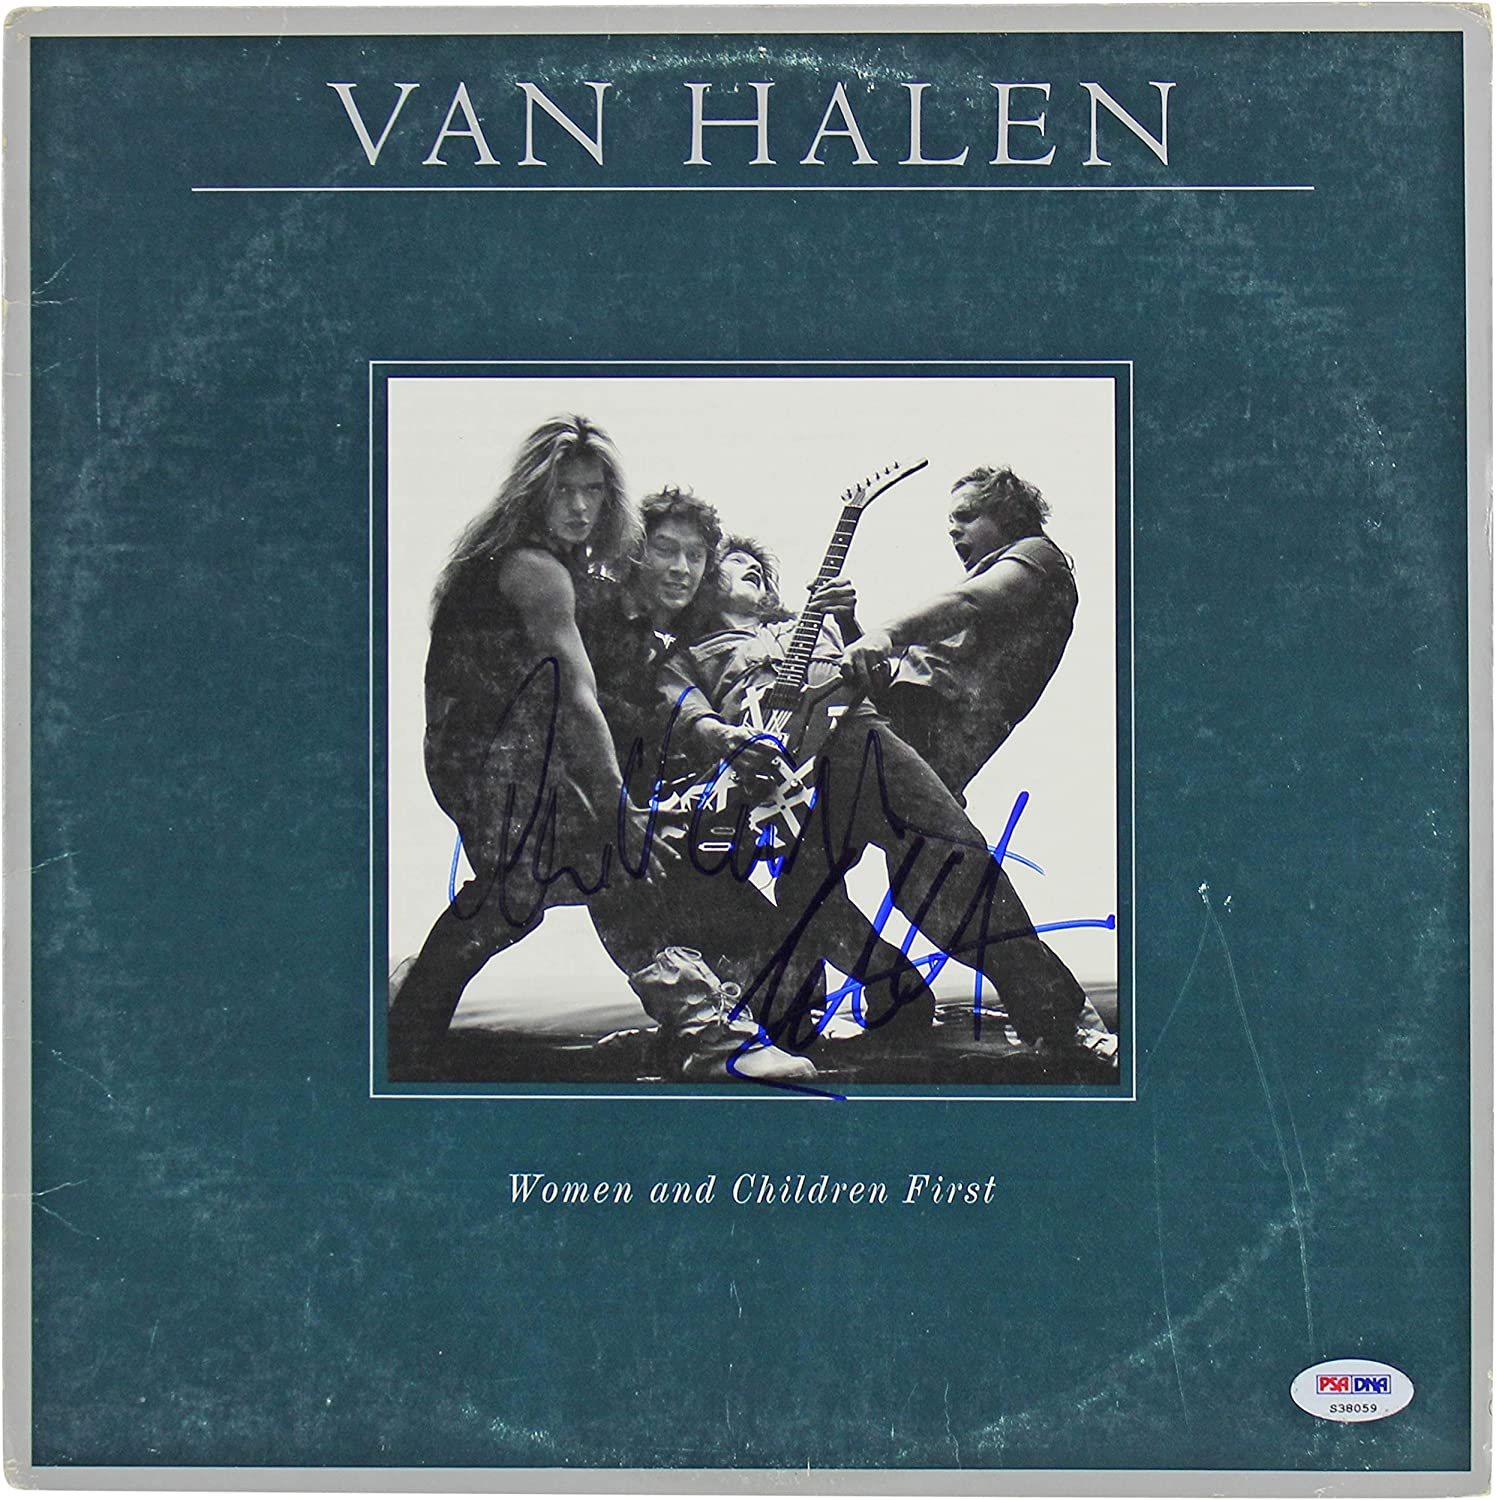 Amazon Com Eddie Van Halen Alex Van Halen Signed Album Cover W Vinyl Psa Dna S38059 Entertainment Collectibles